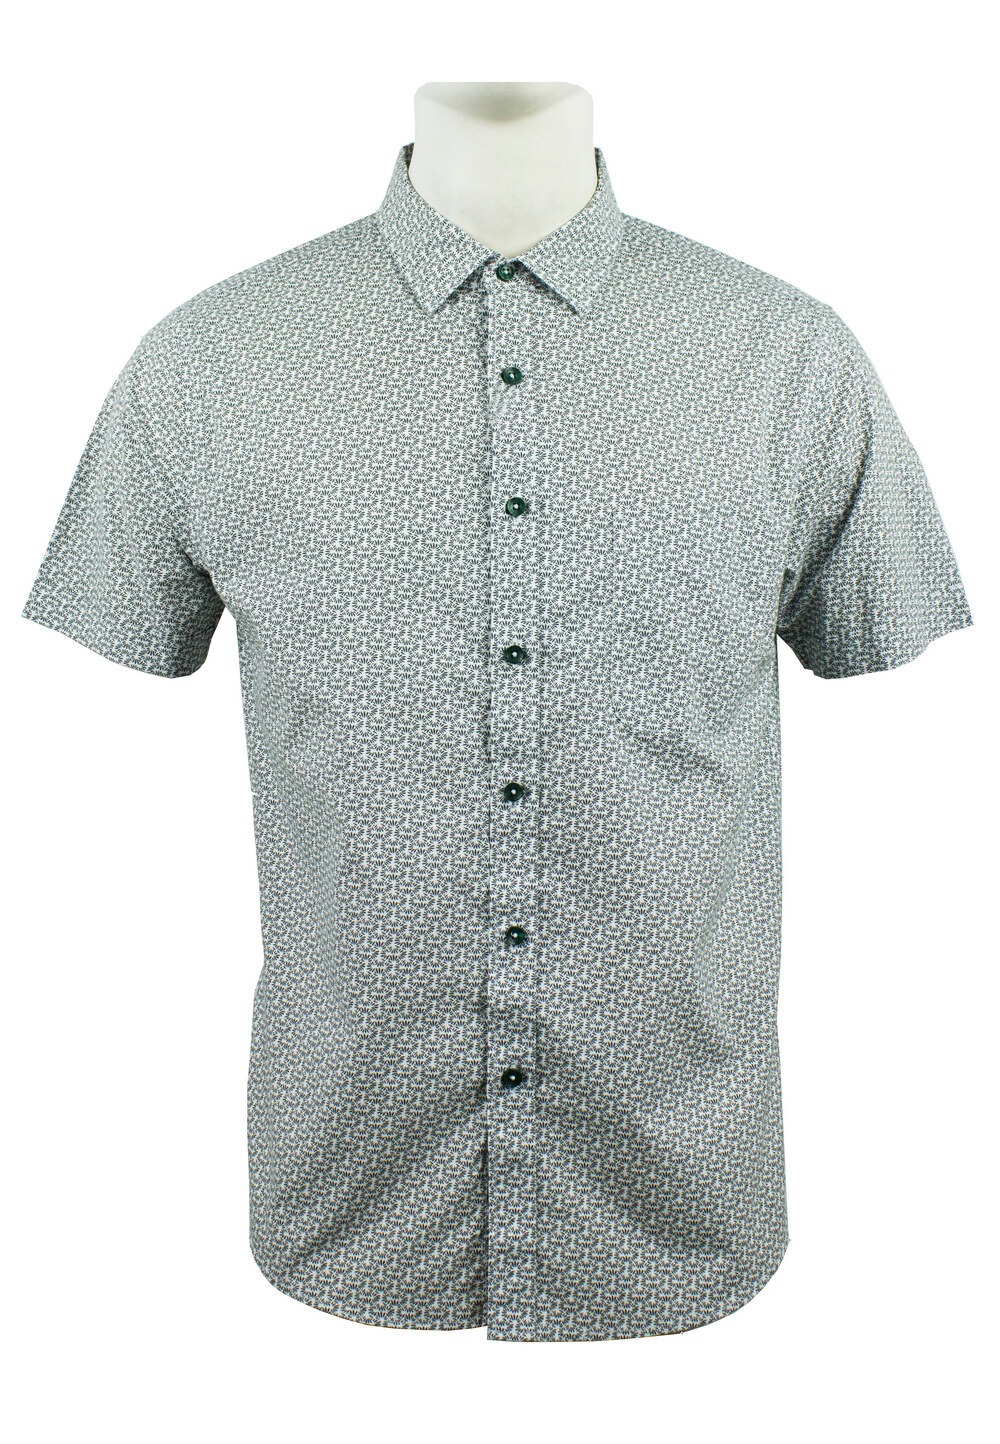 Men's Printed Short Sleeve Shirt 885